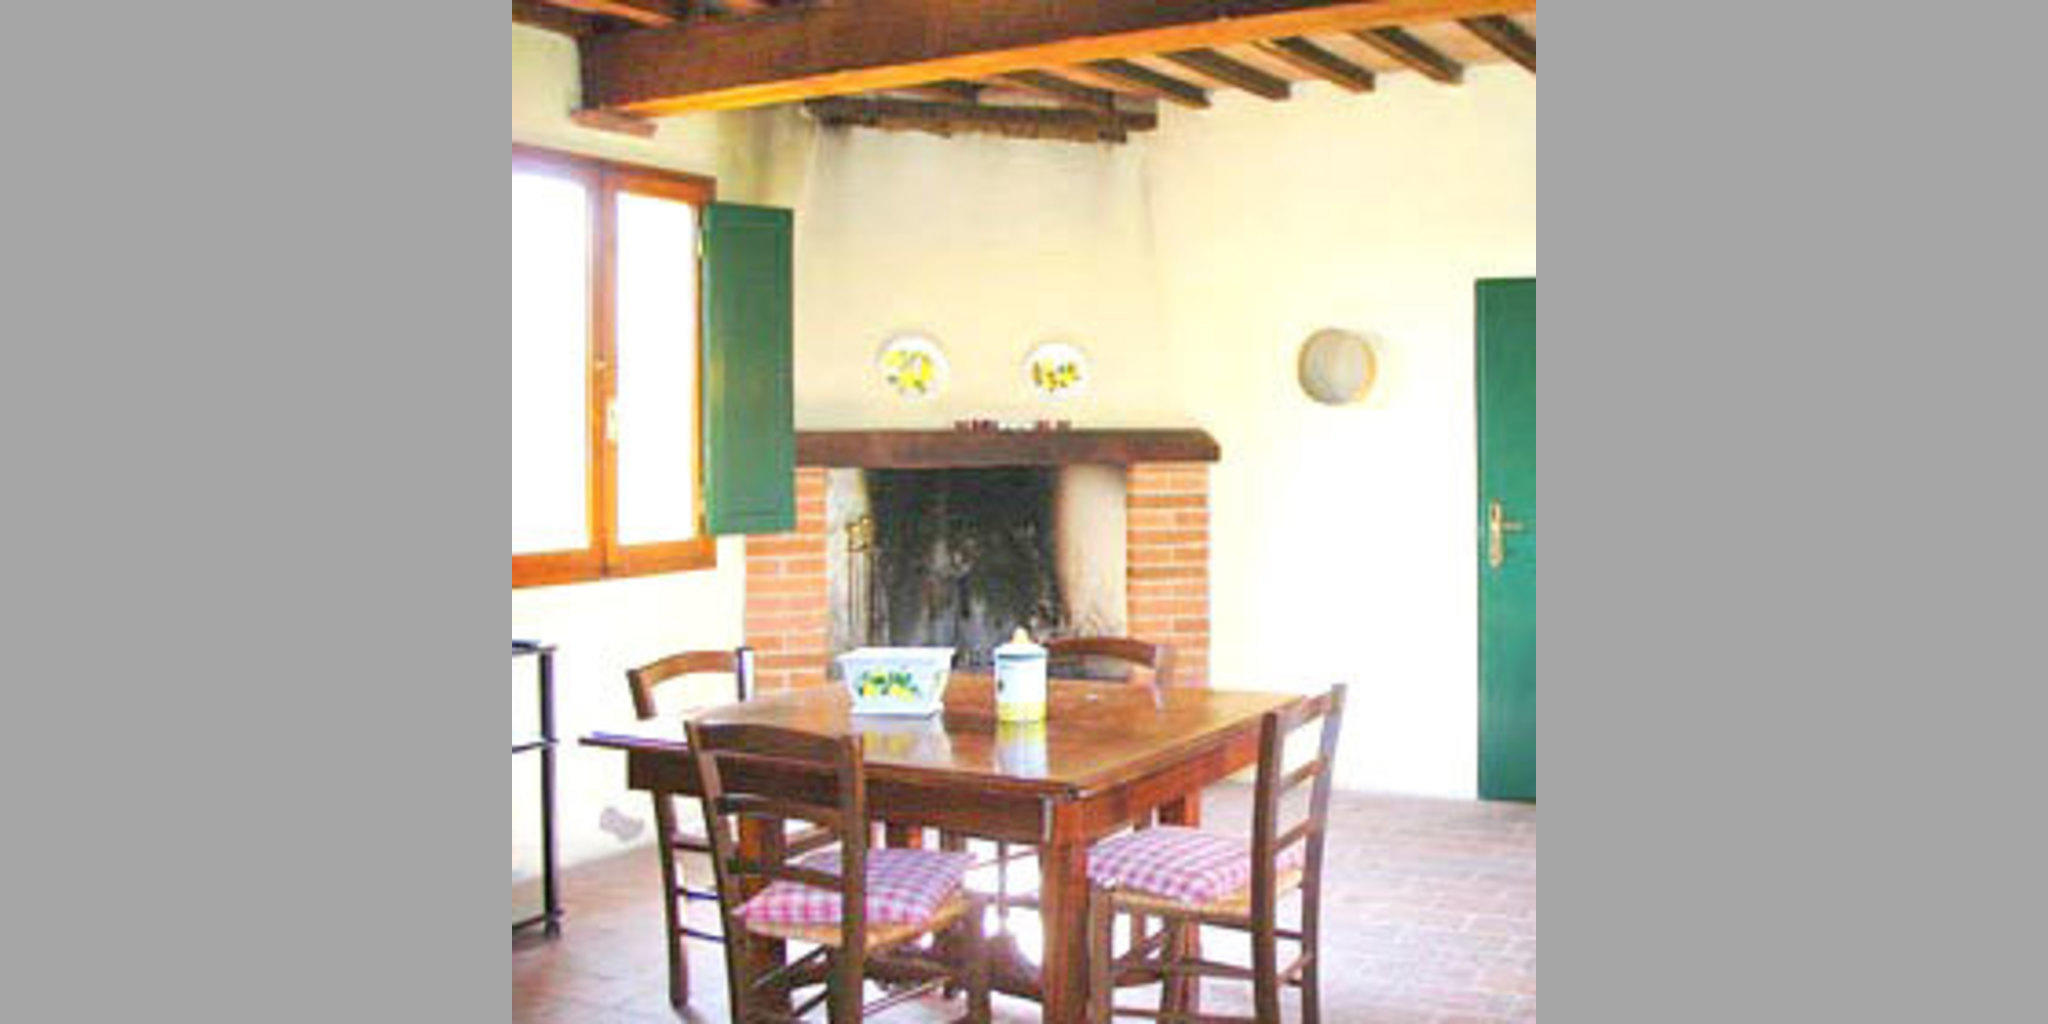 Bed & Breakfast Palaia - Reception Address:  Carbonaia